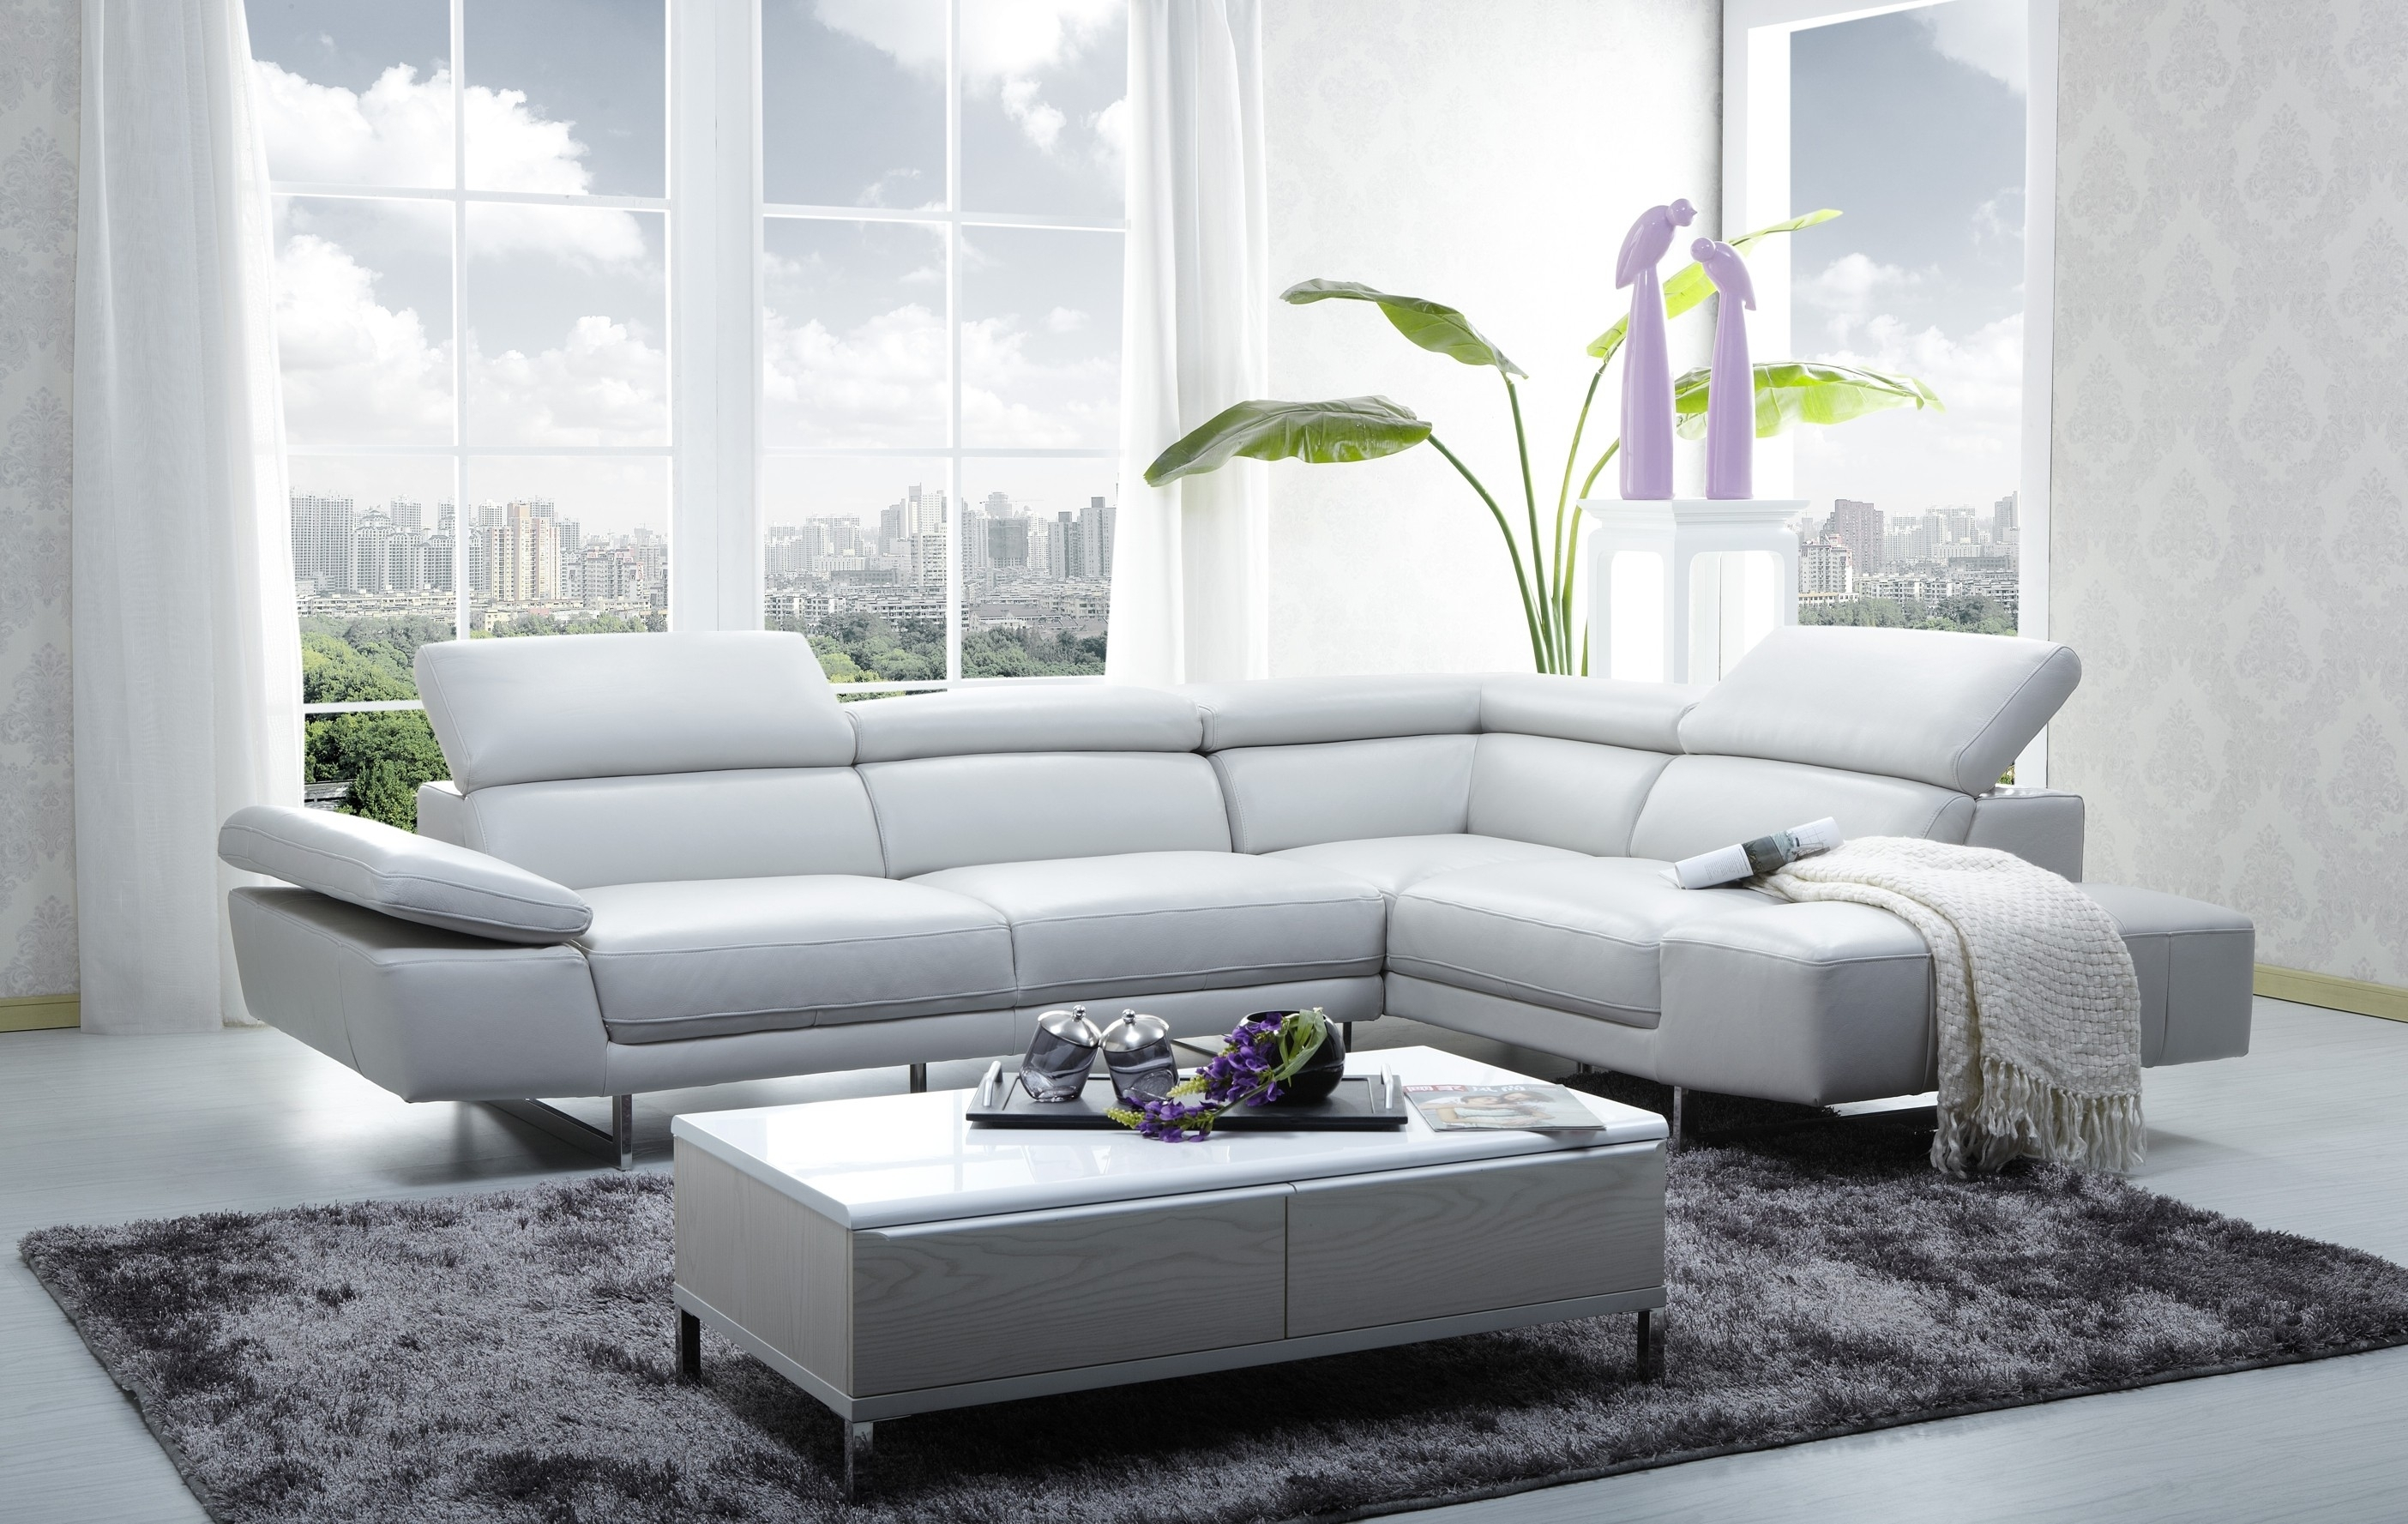 1717 Italian Leather Modern Sectional Sofa With Regard To Sectional Sofas In Stock (View 8 of 10)